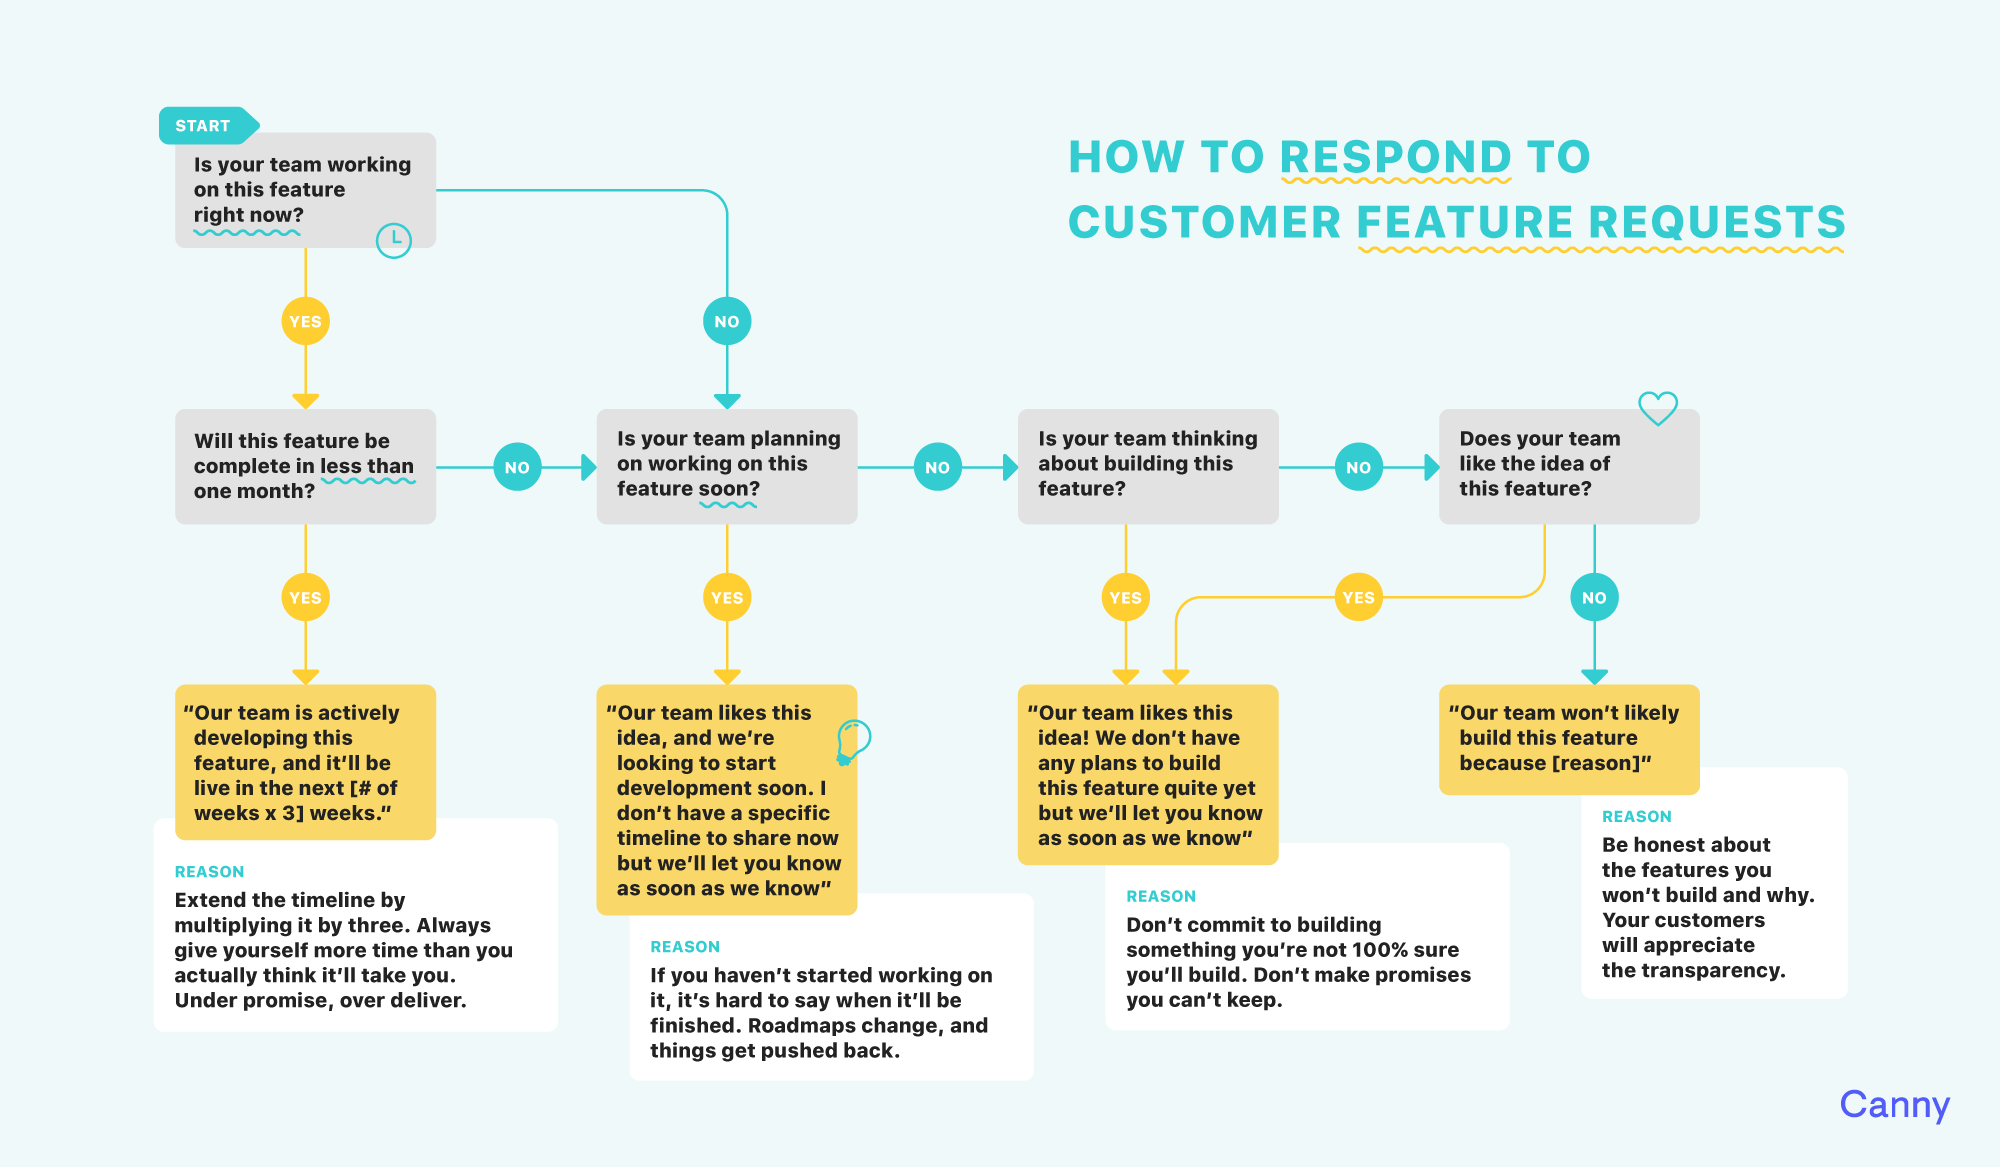 how to respond to customer feature requests